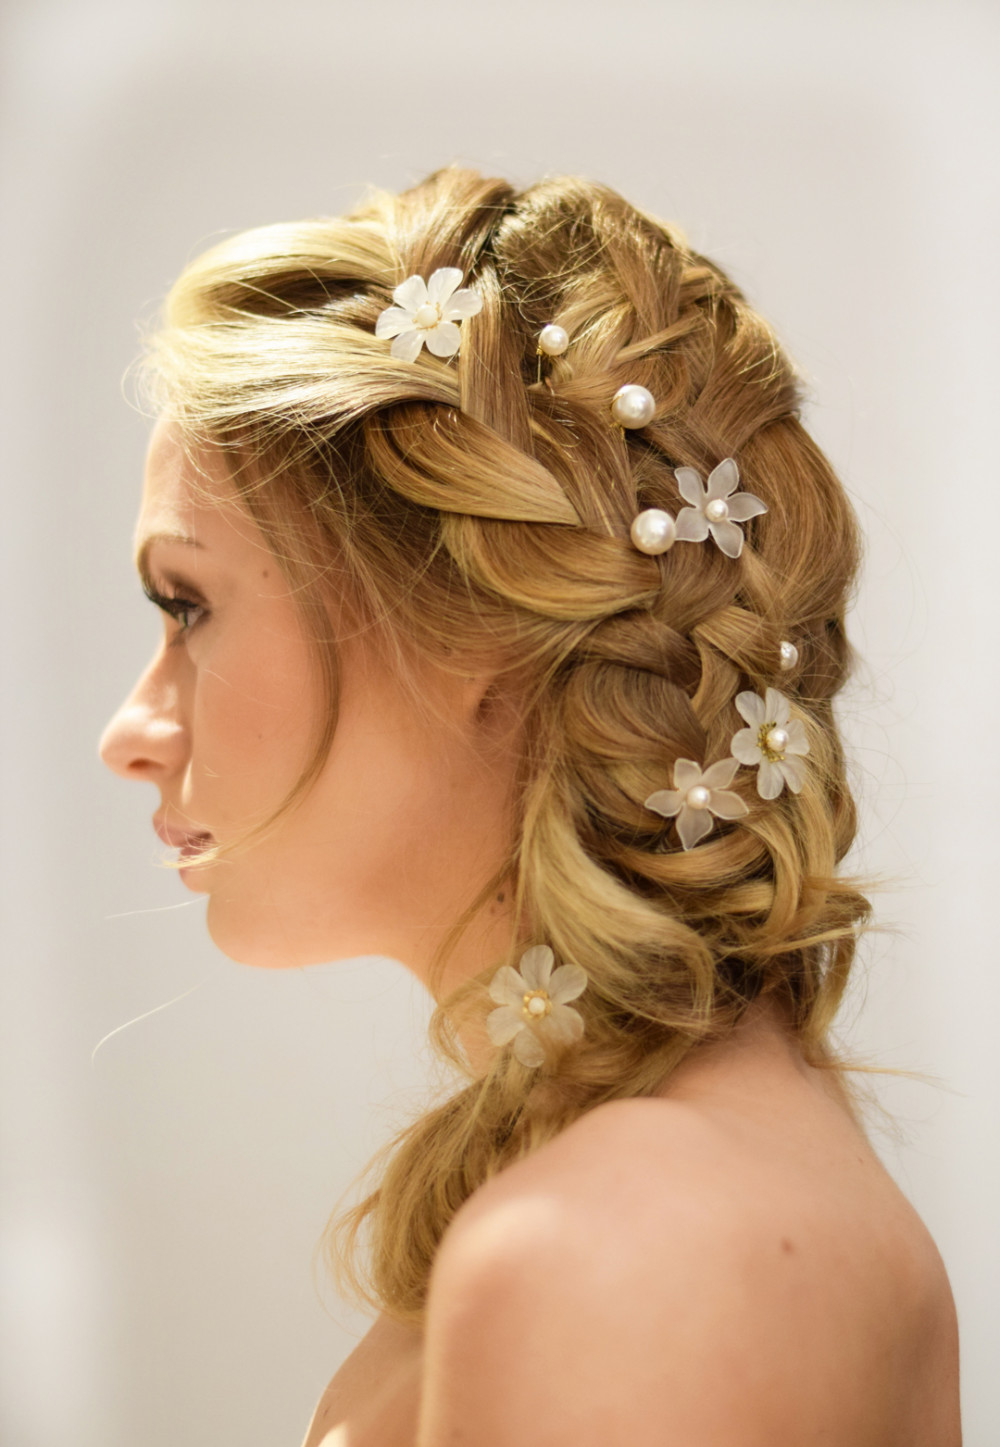 - Make Me Bridal Artist: Bridal hair by suzy.